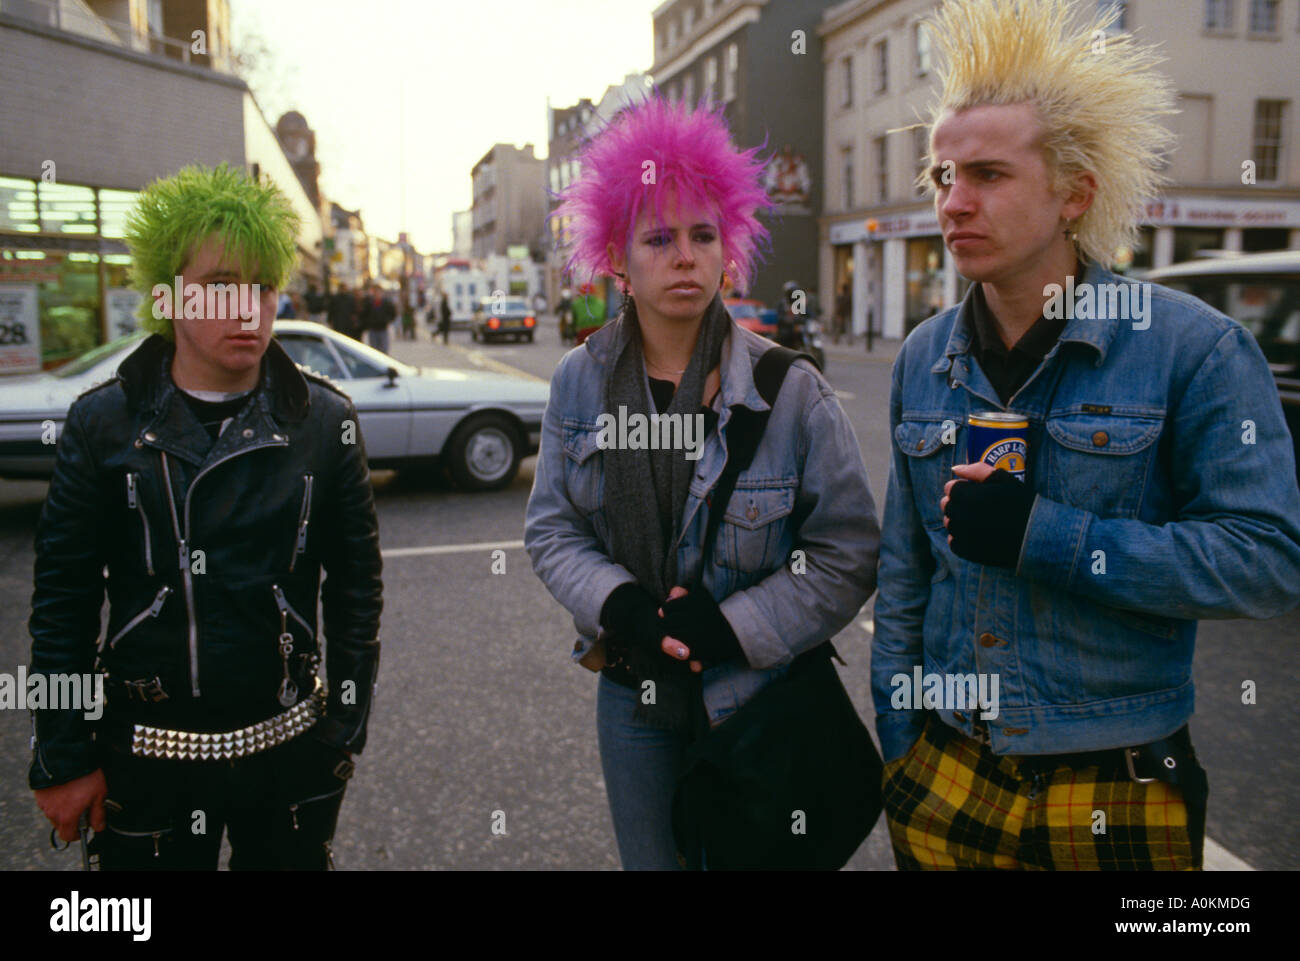 Punk Rockers On The Kings Road Chelsea London England